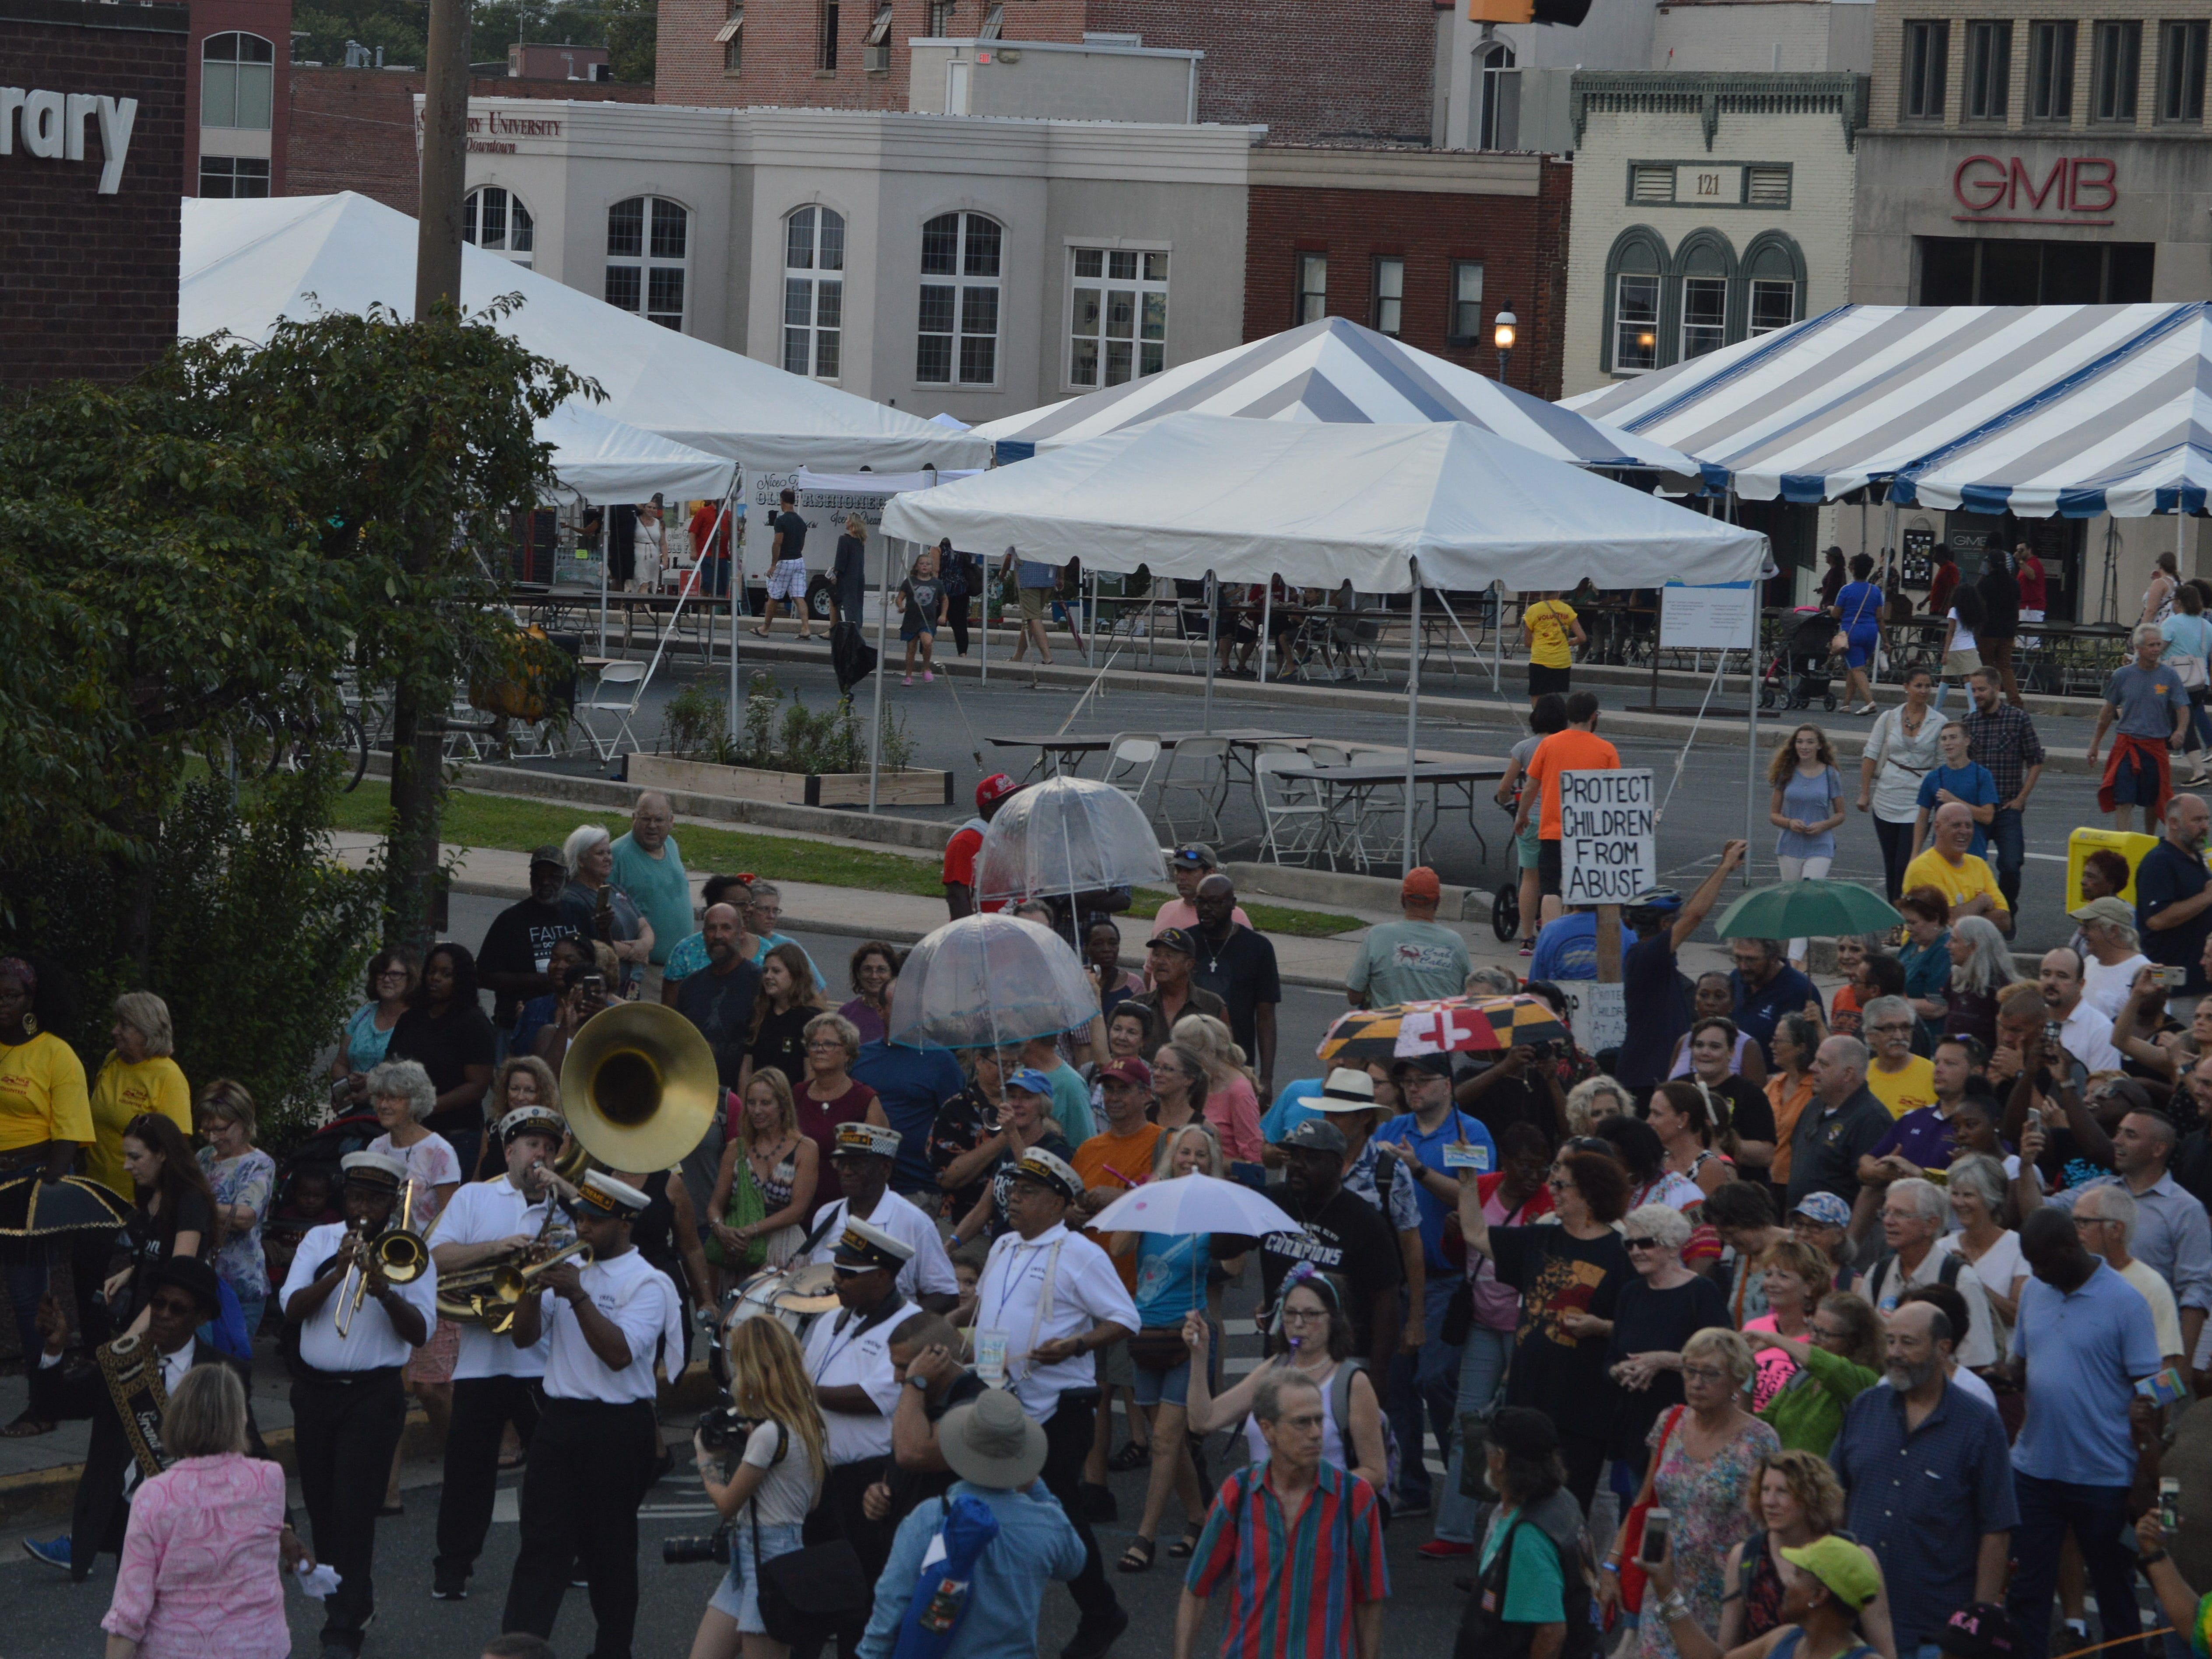 The Treme Brass Band leads a parade through downtown Salisbury during the National Folk Festival on Sept. 7, 2018.